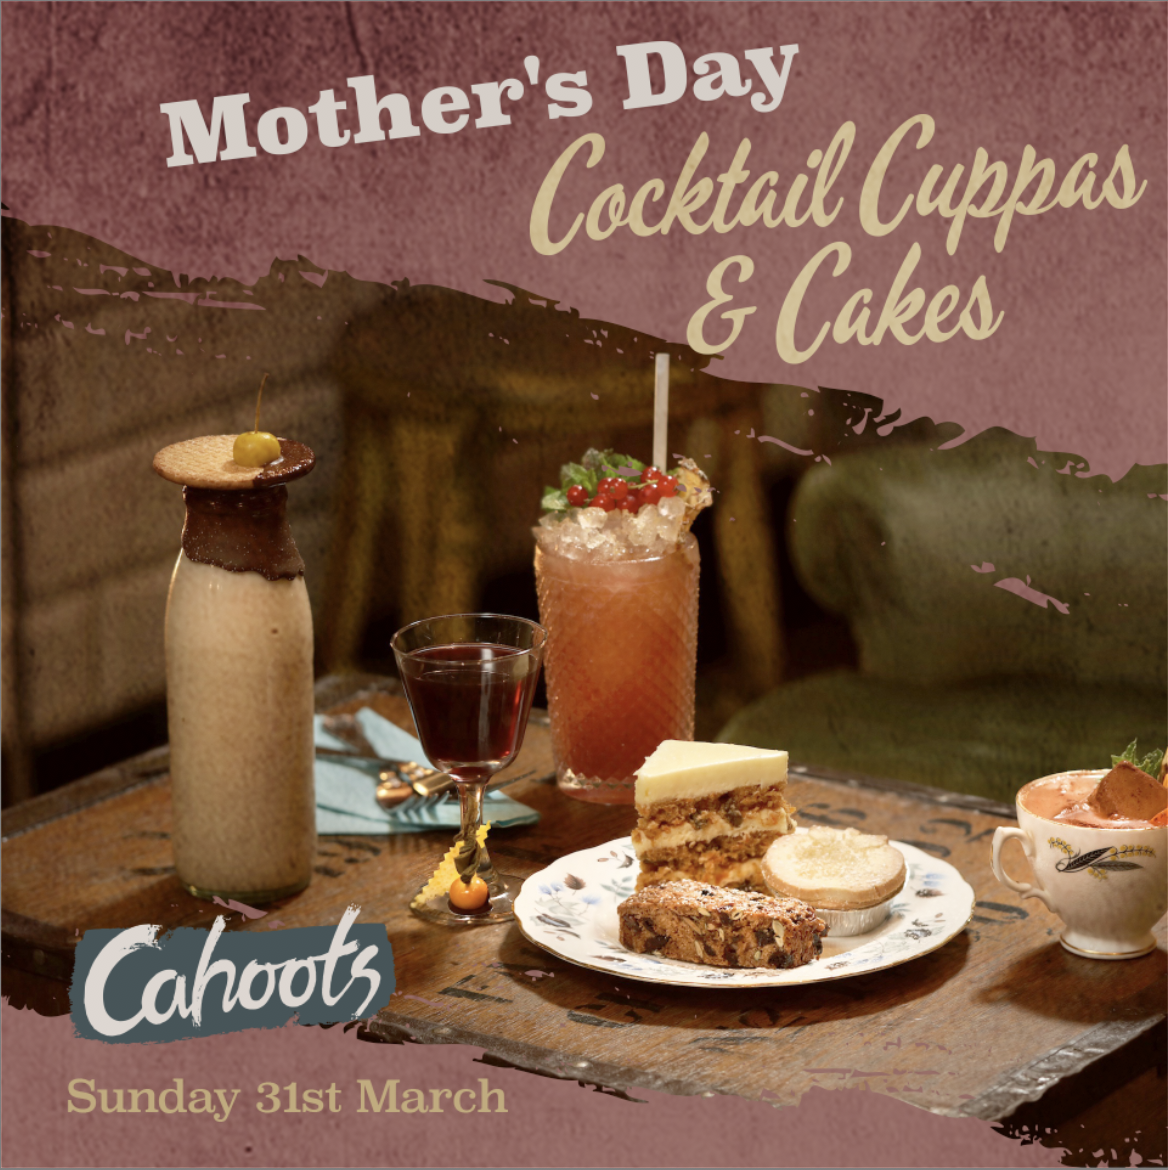 Mother's Day Cocktail Cuppas & Cakes